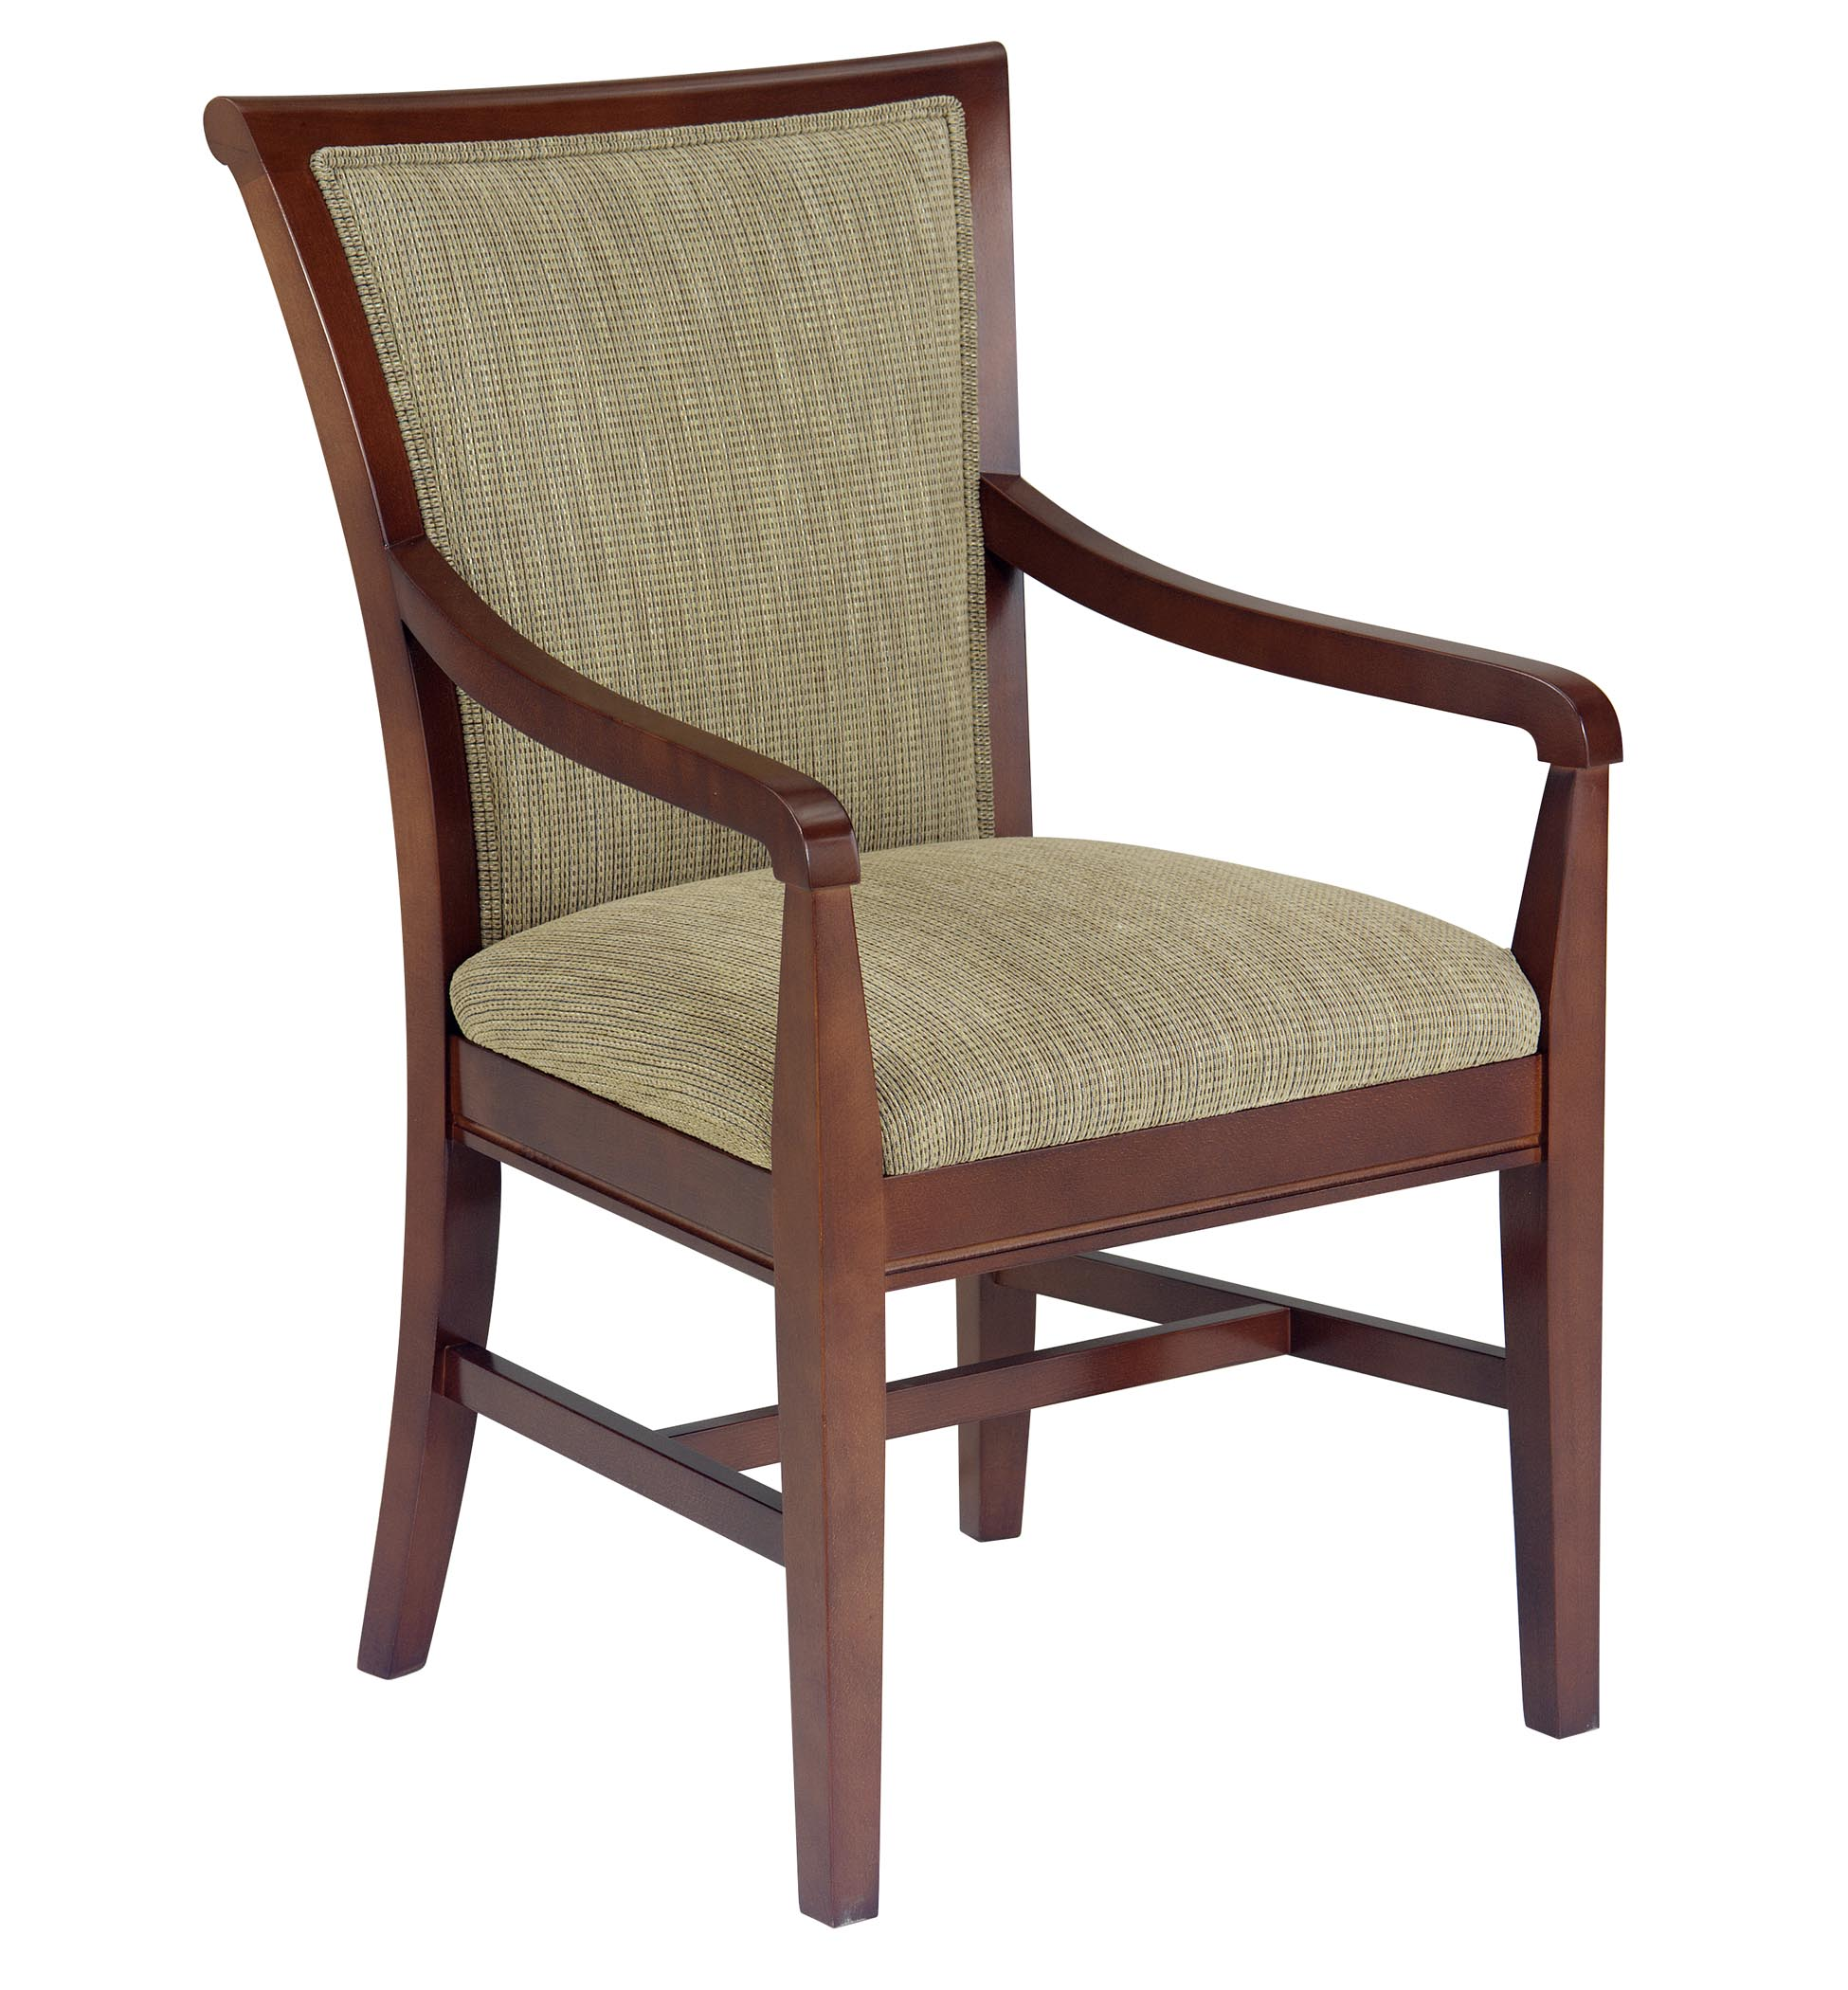 Wooden Arm Chair Lg1067 1 Wood Arm Chair